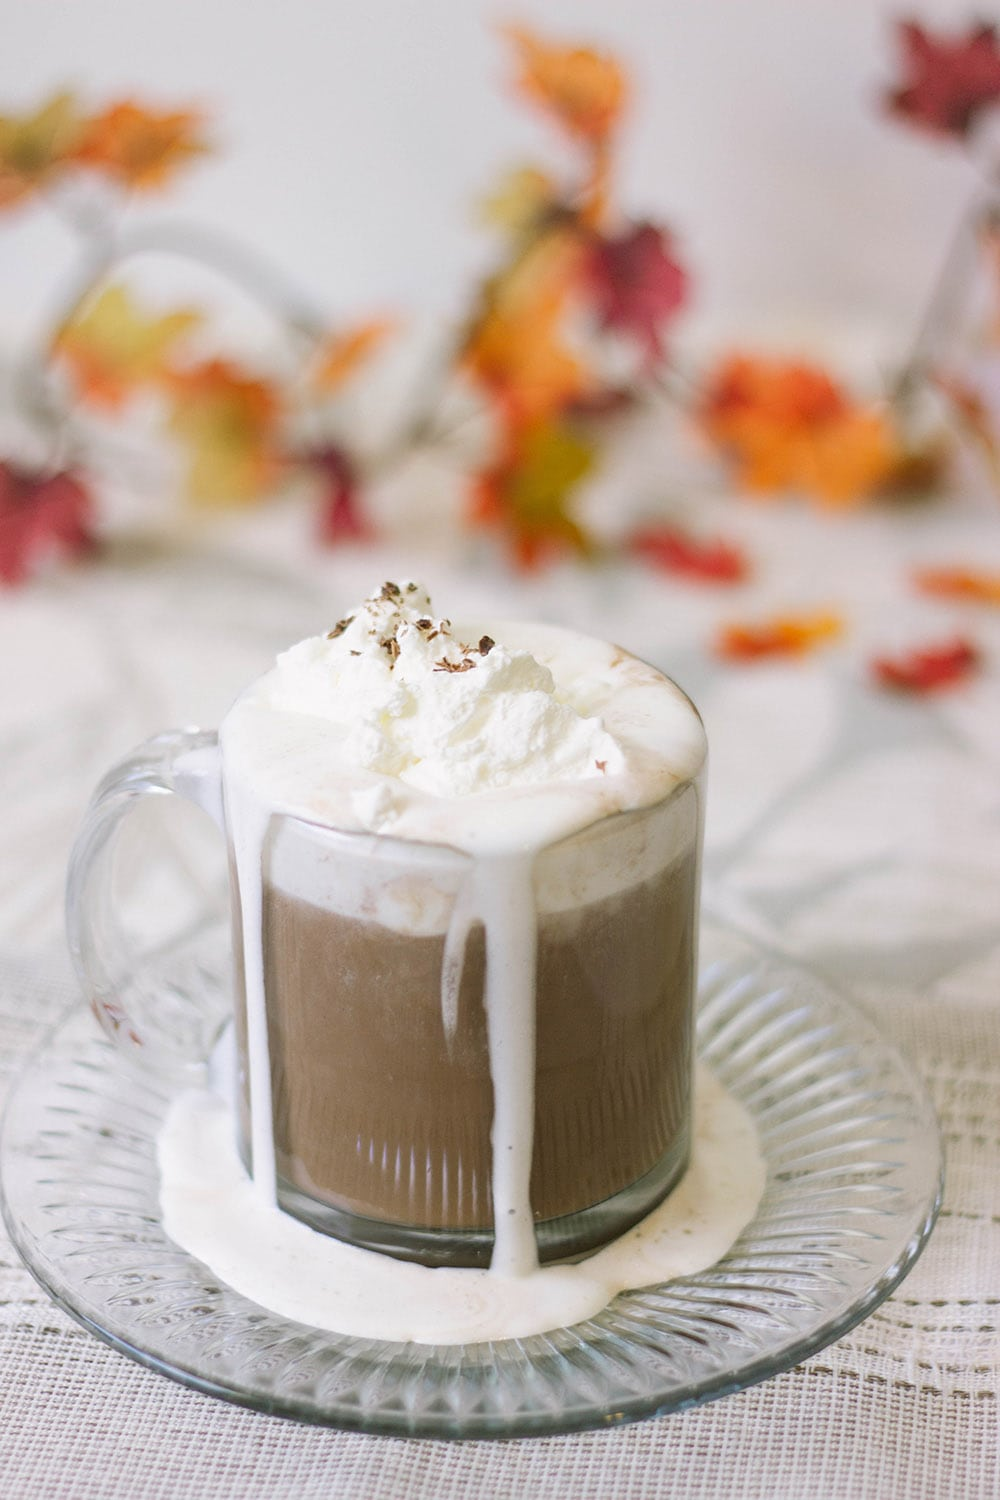 Glass of low carb hot chocolate with keto whipped cream